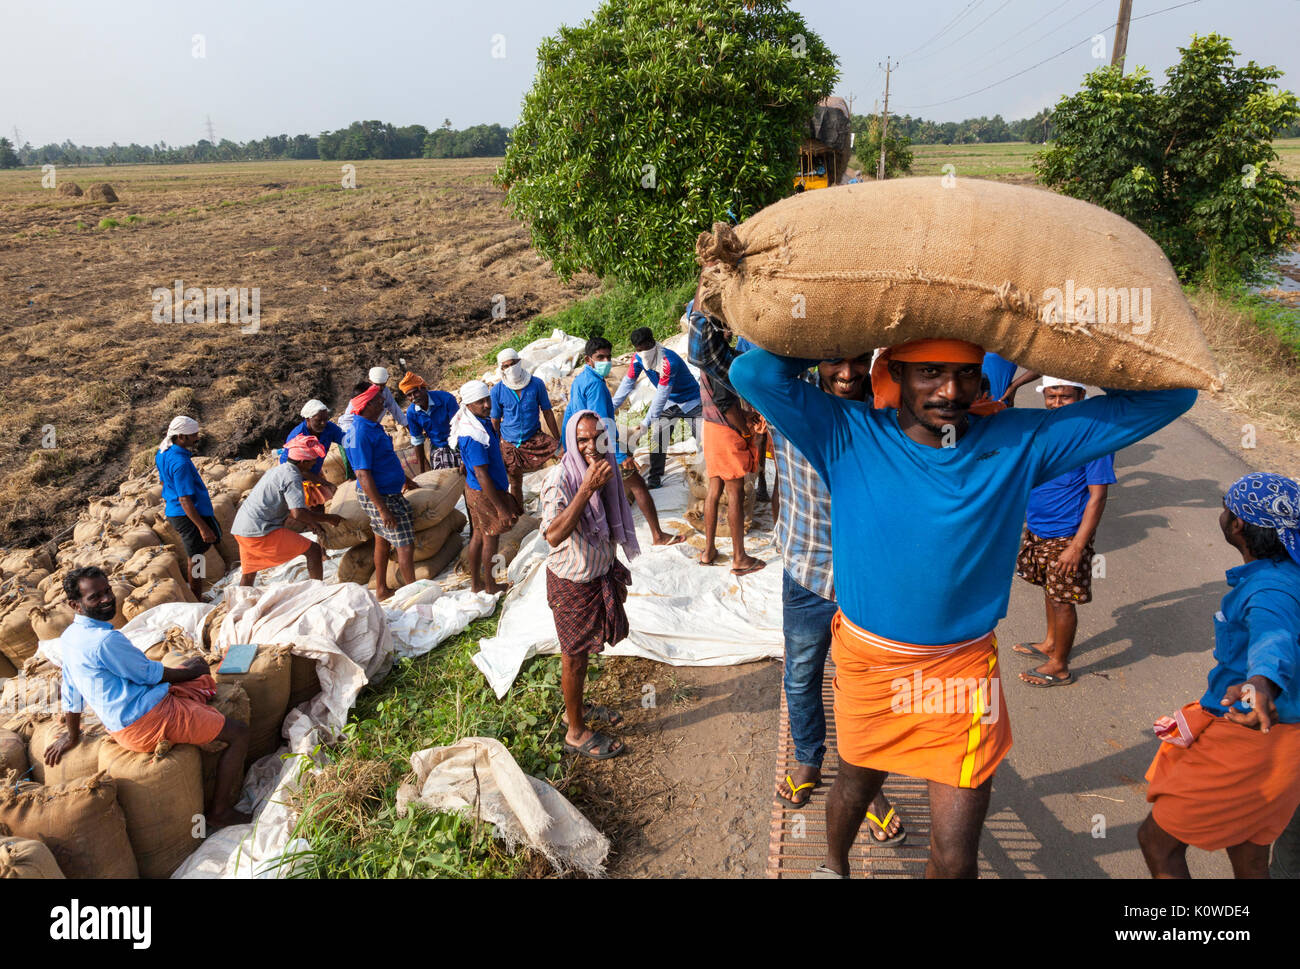 Indian labourers working during the rice harvest, Kerala, India - Stock Image